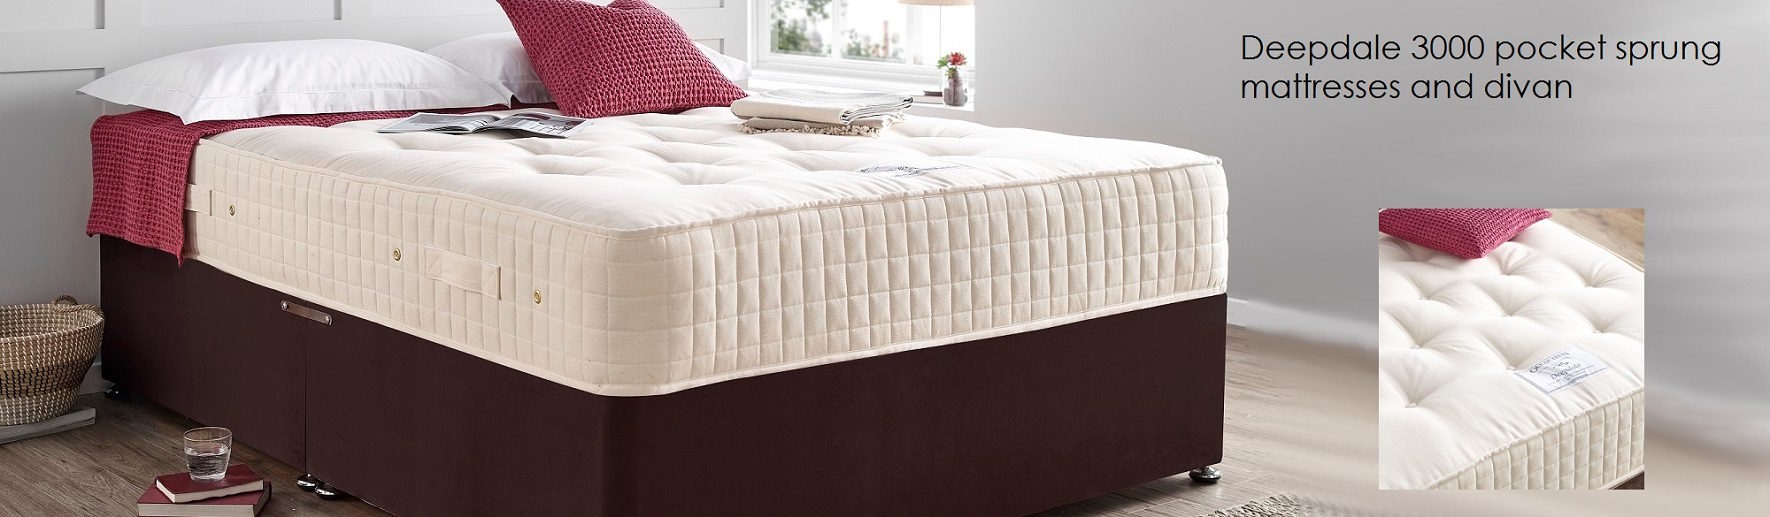 Hotel Quality Beds Divans And Mattresses Out Of Eden